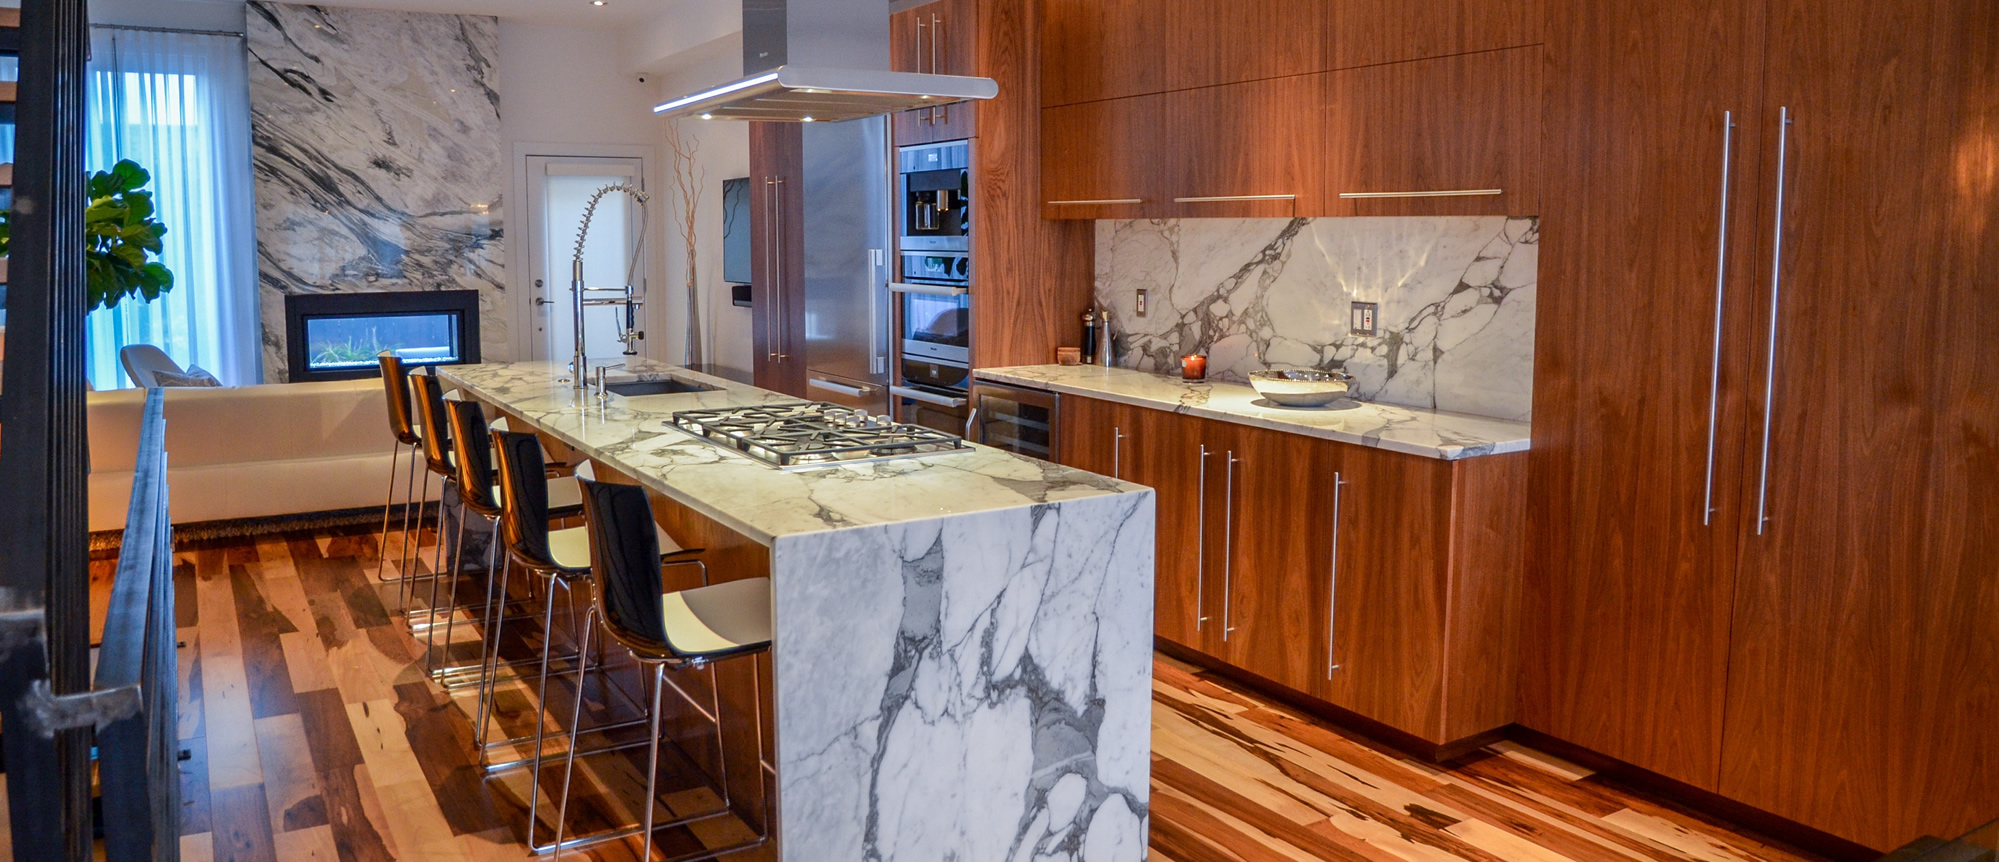 Kitchen Design Center York Pa Colonial Marble And Granite Custom Kitchen Countertops